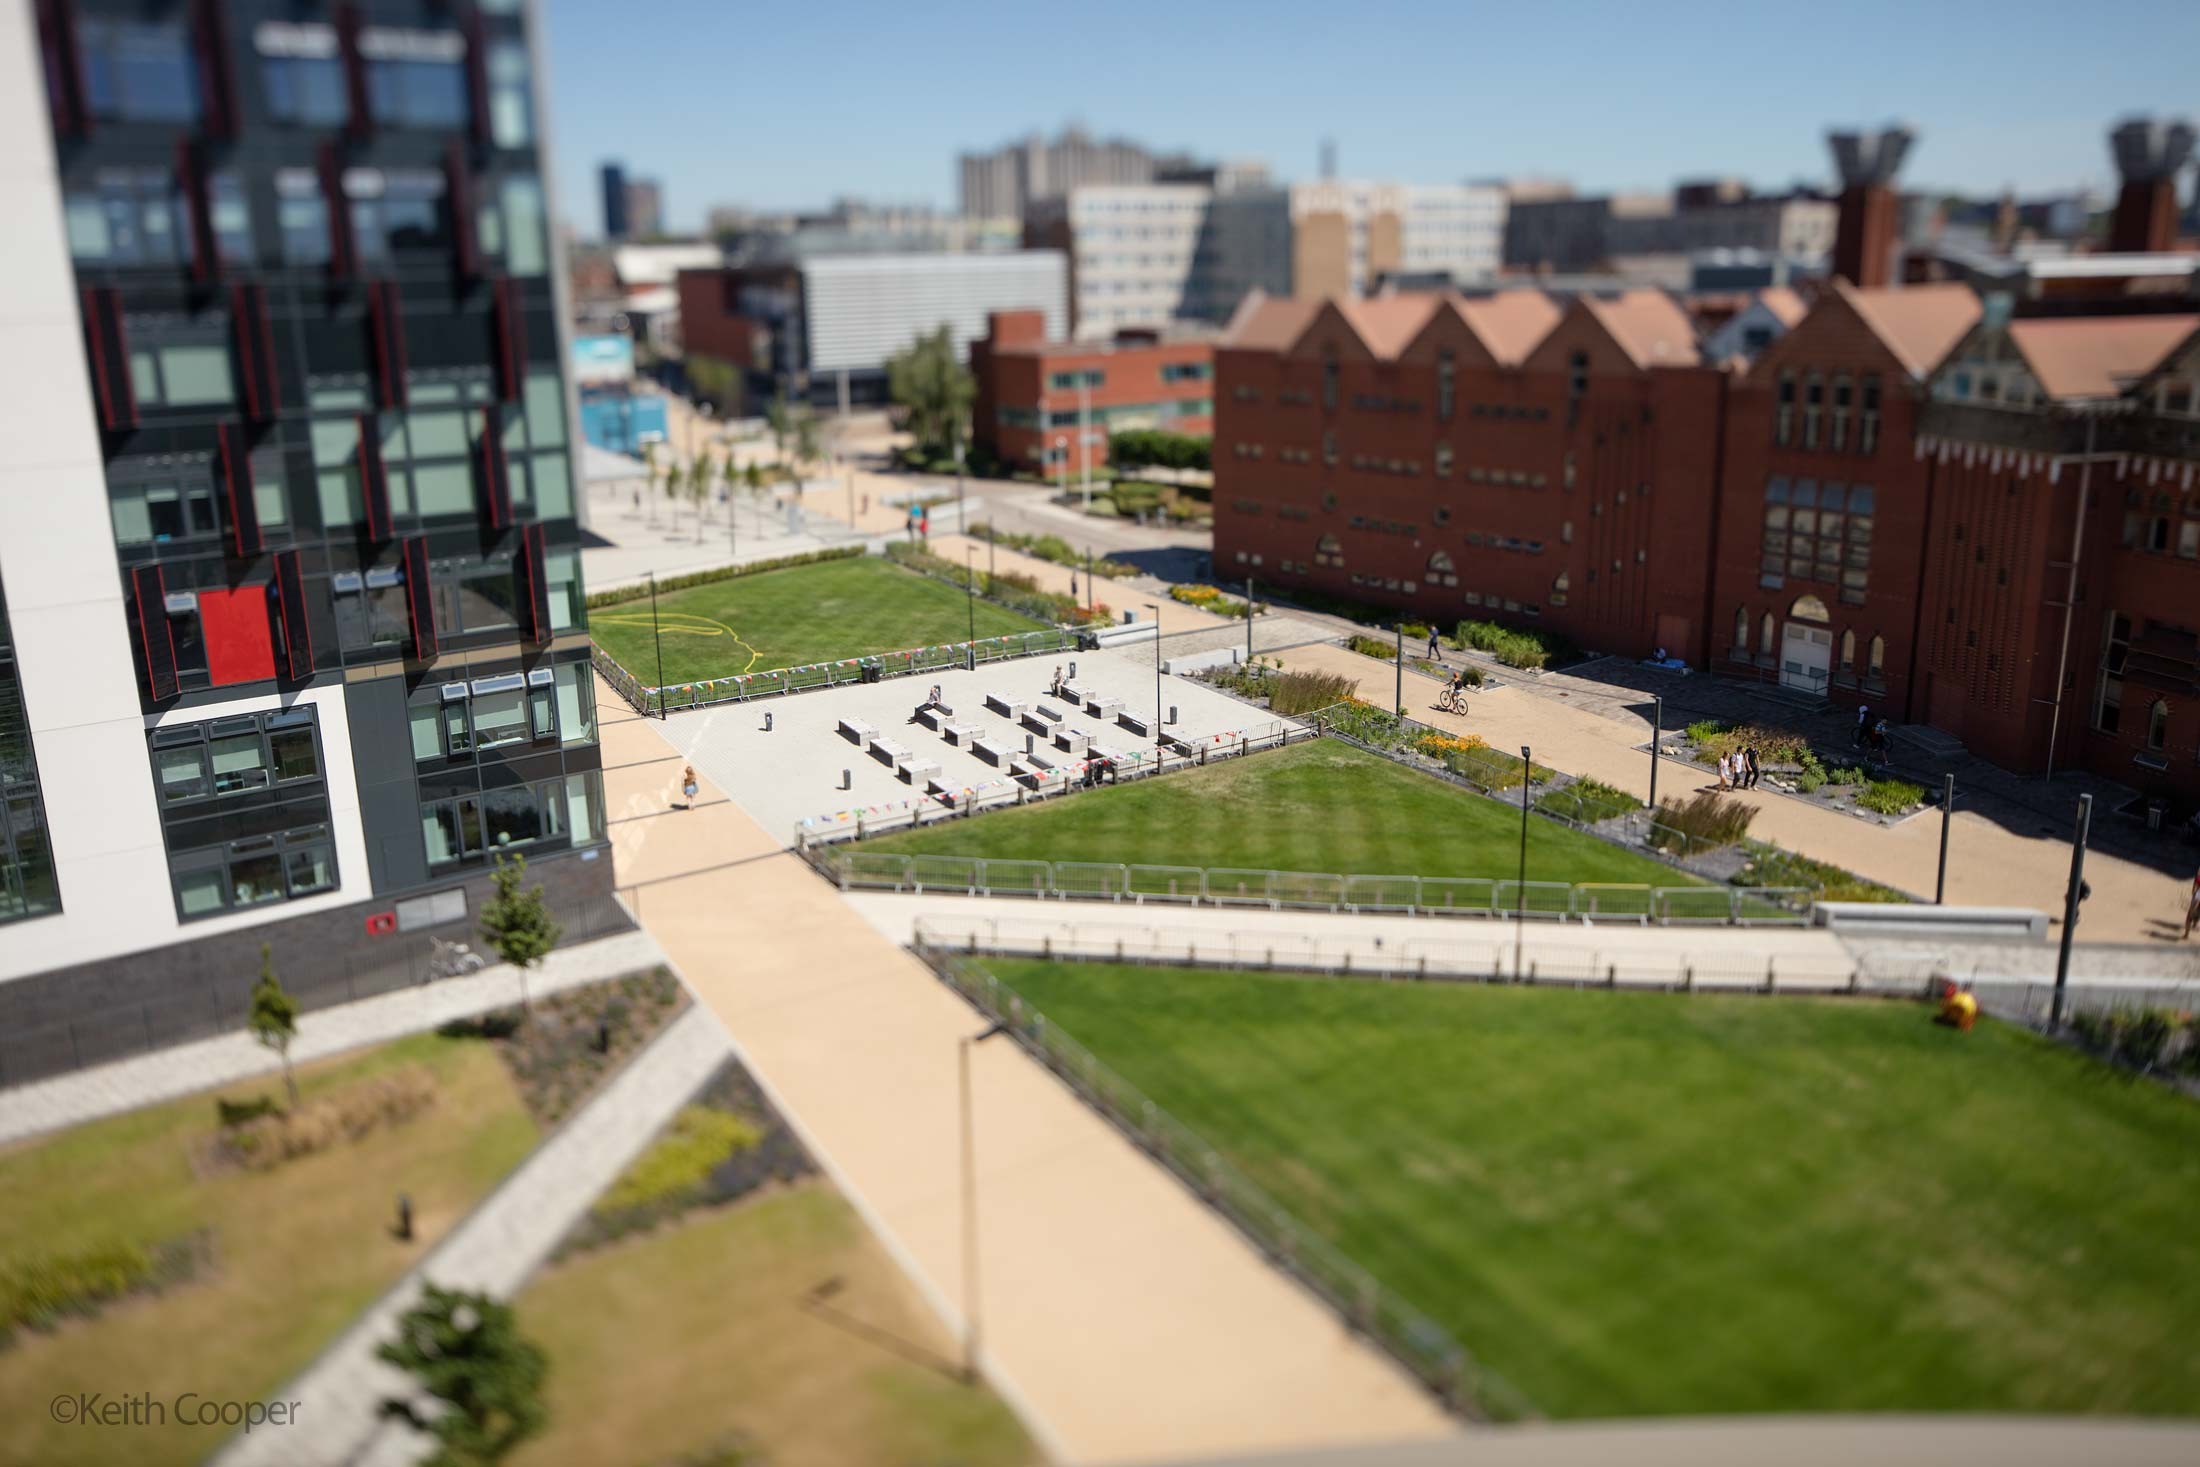 miniature world view DMU campus 1